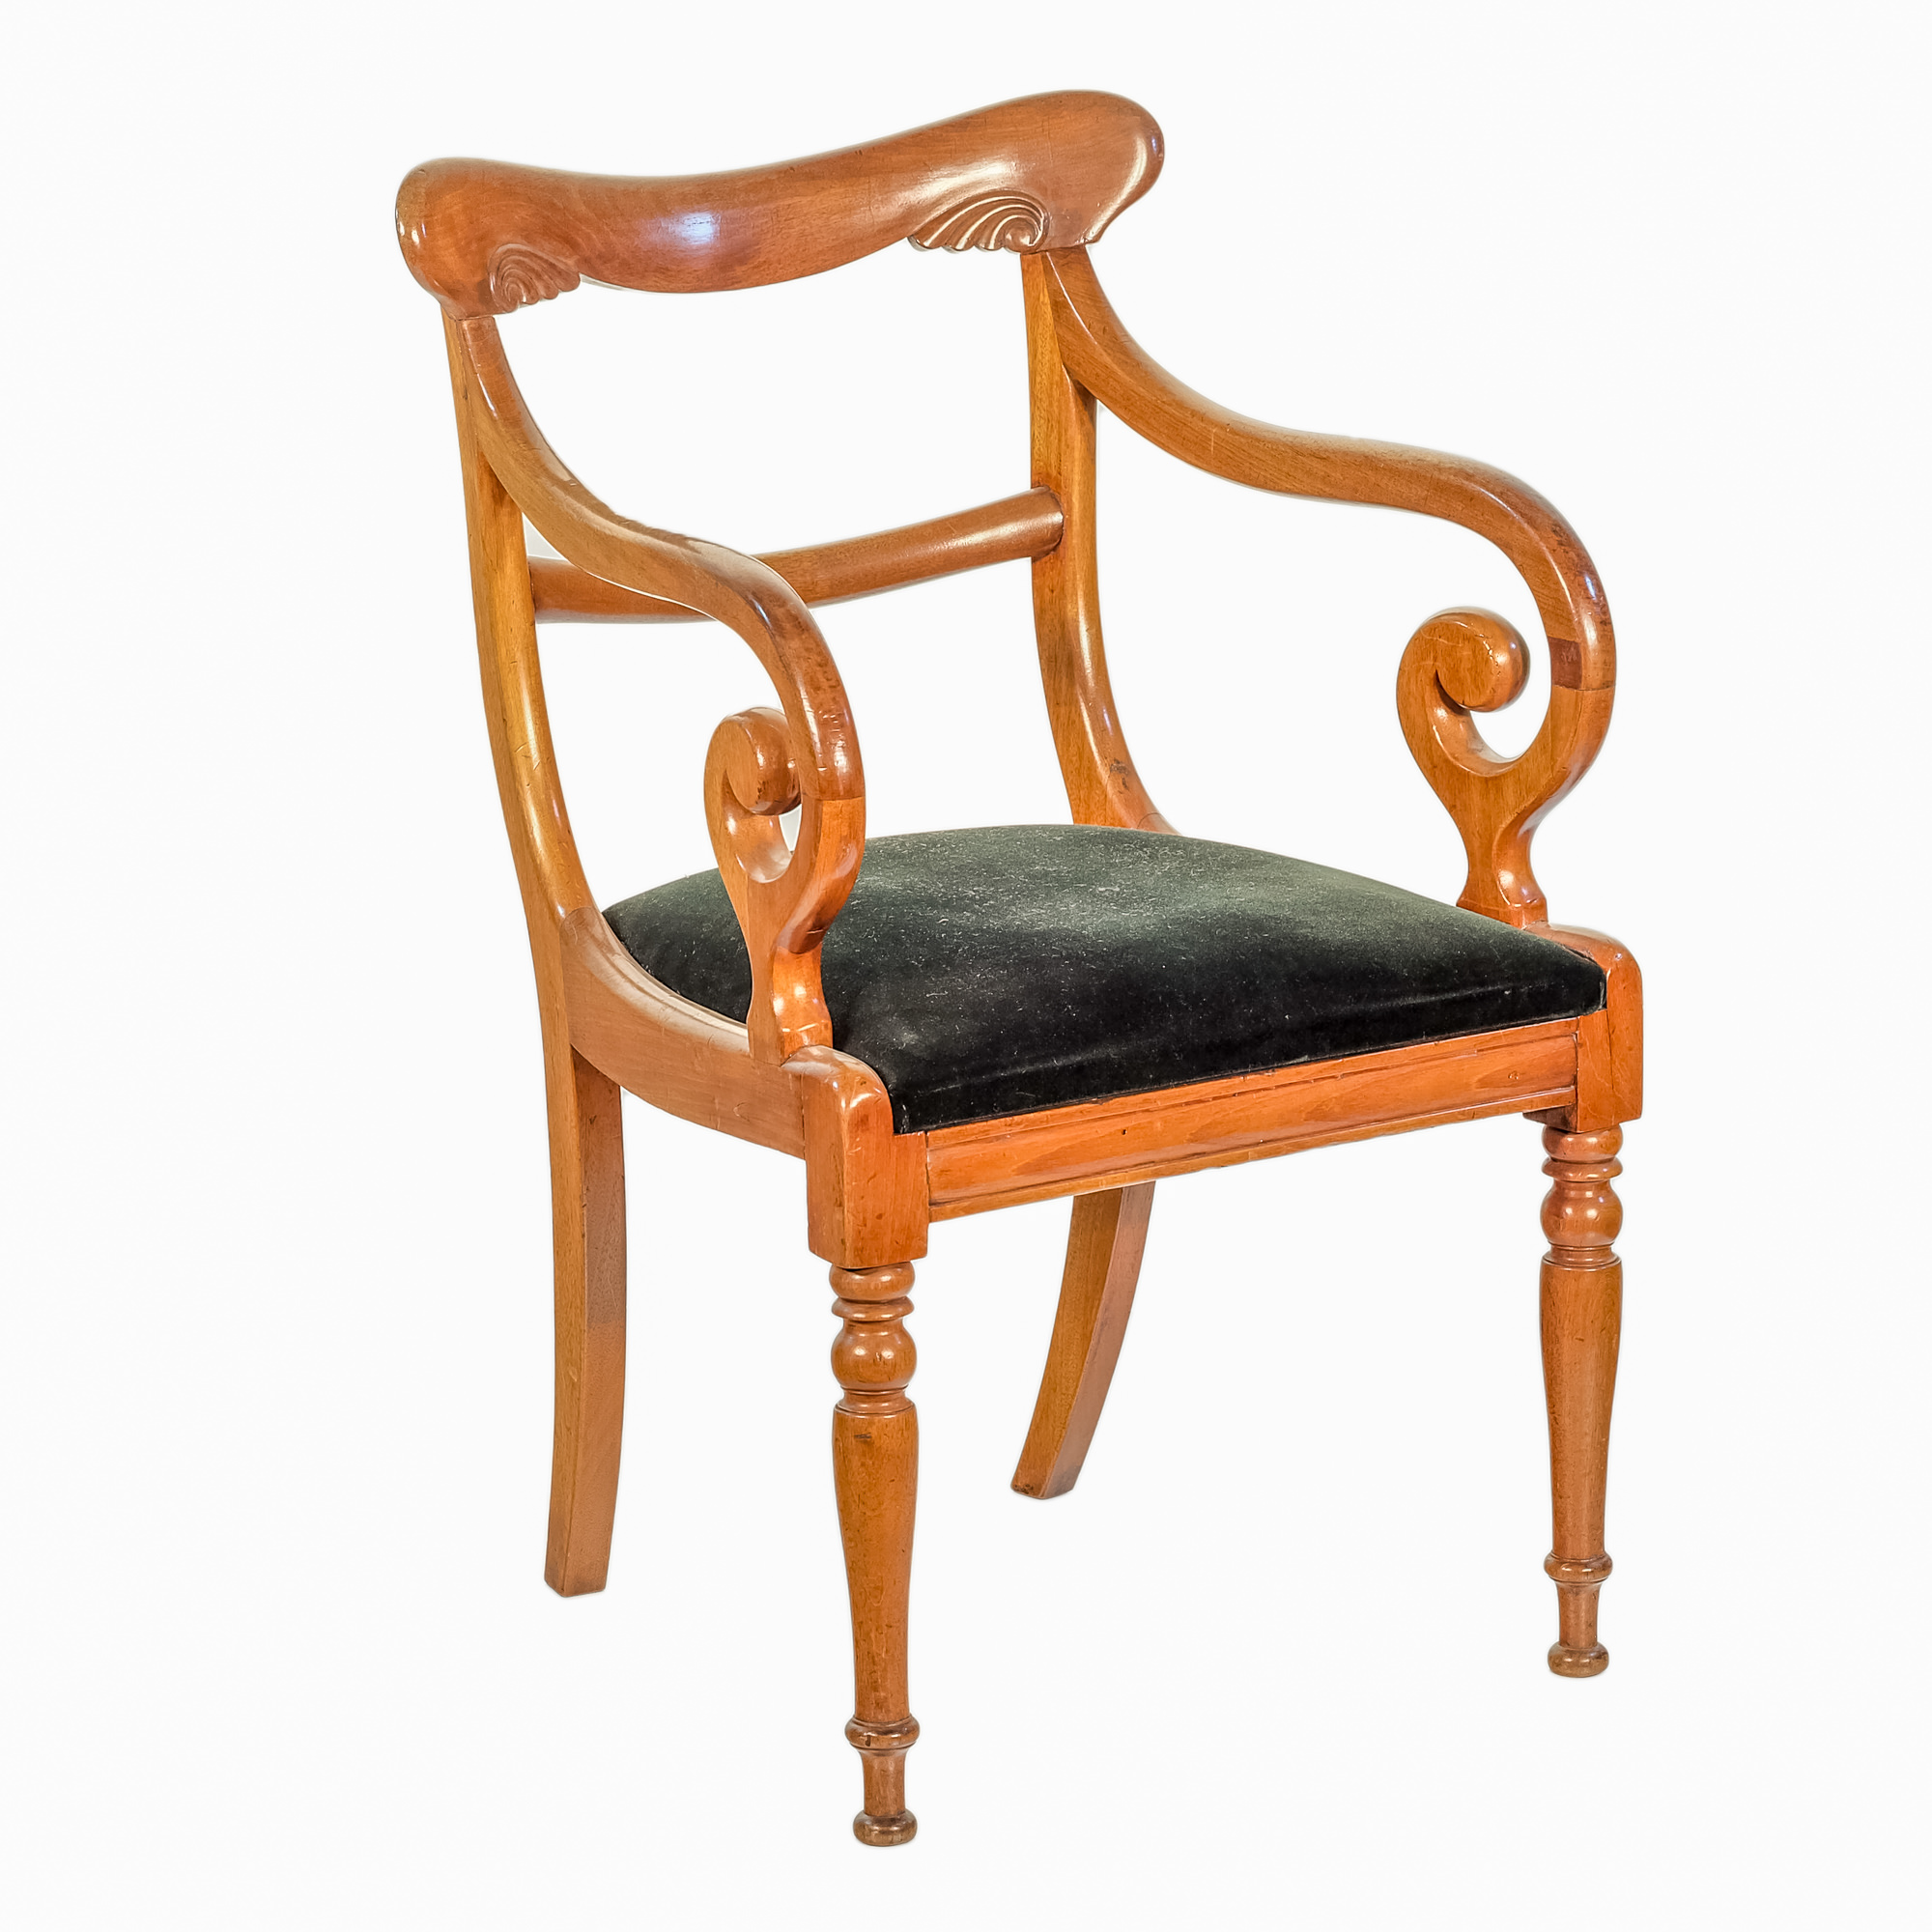 'William IV Mahogany Scrolled Elbow Chair with Dark Green Velvet Seat Circa 1835'